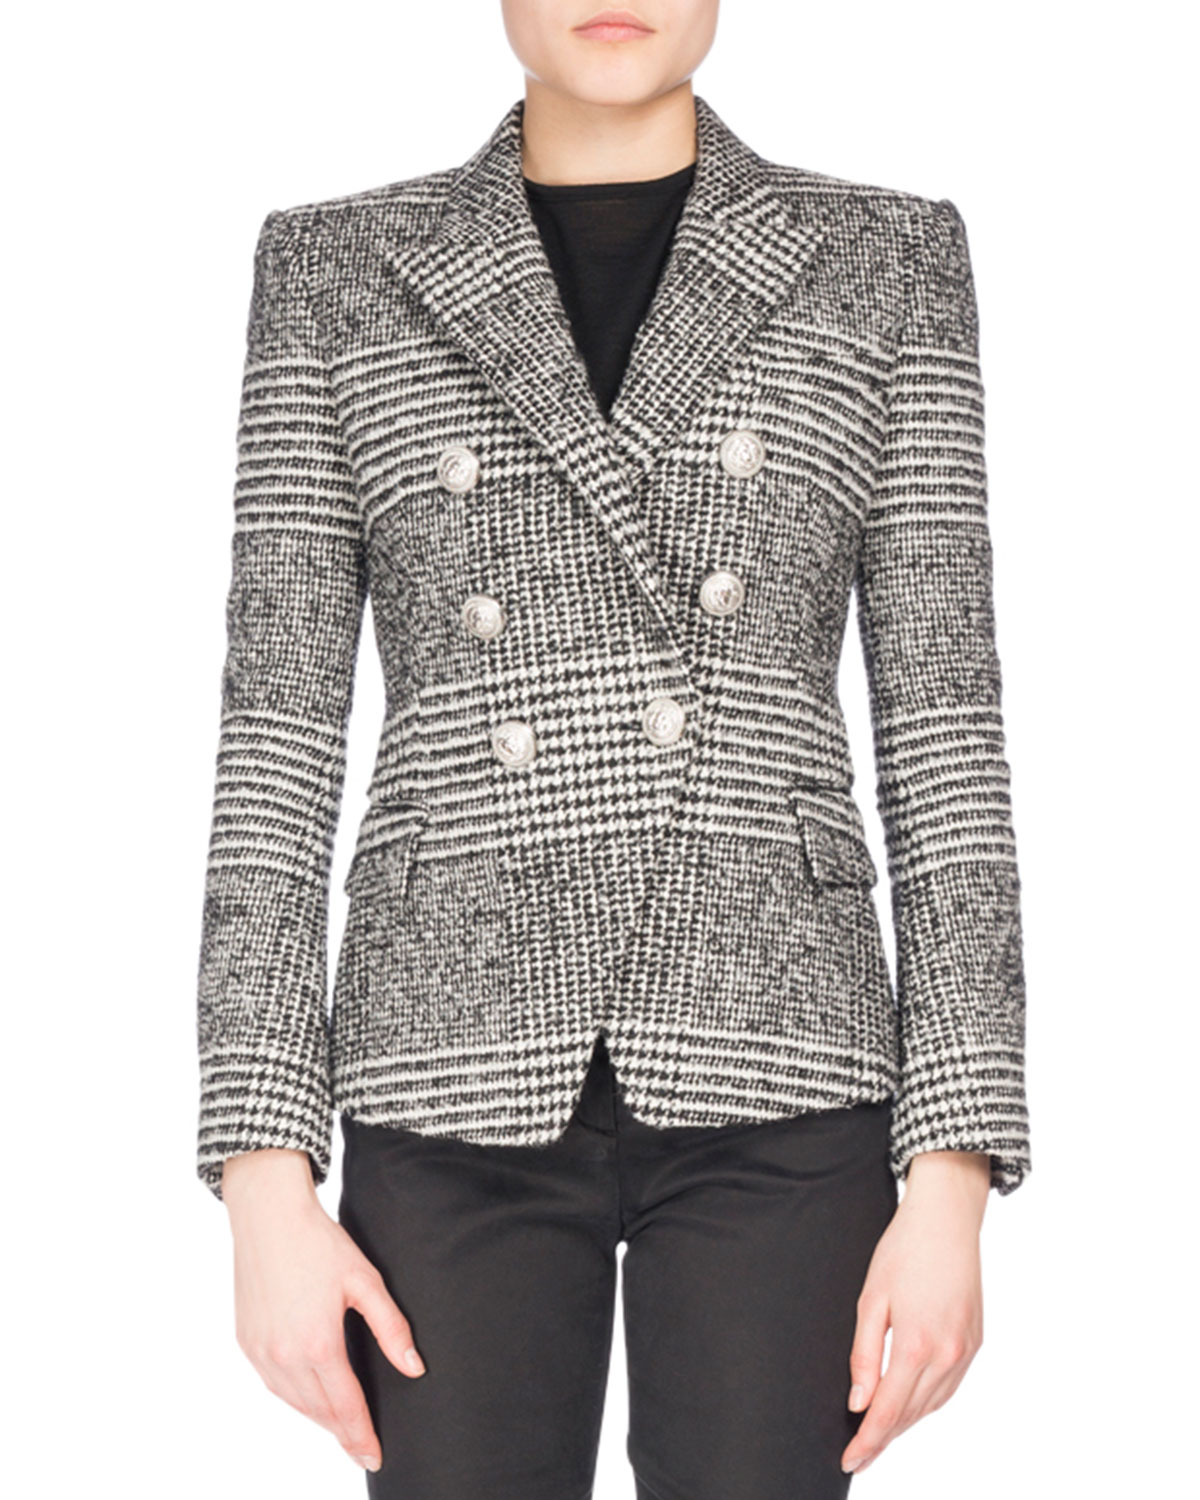 Classic Plaid Tweed Jacket, Black/White